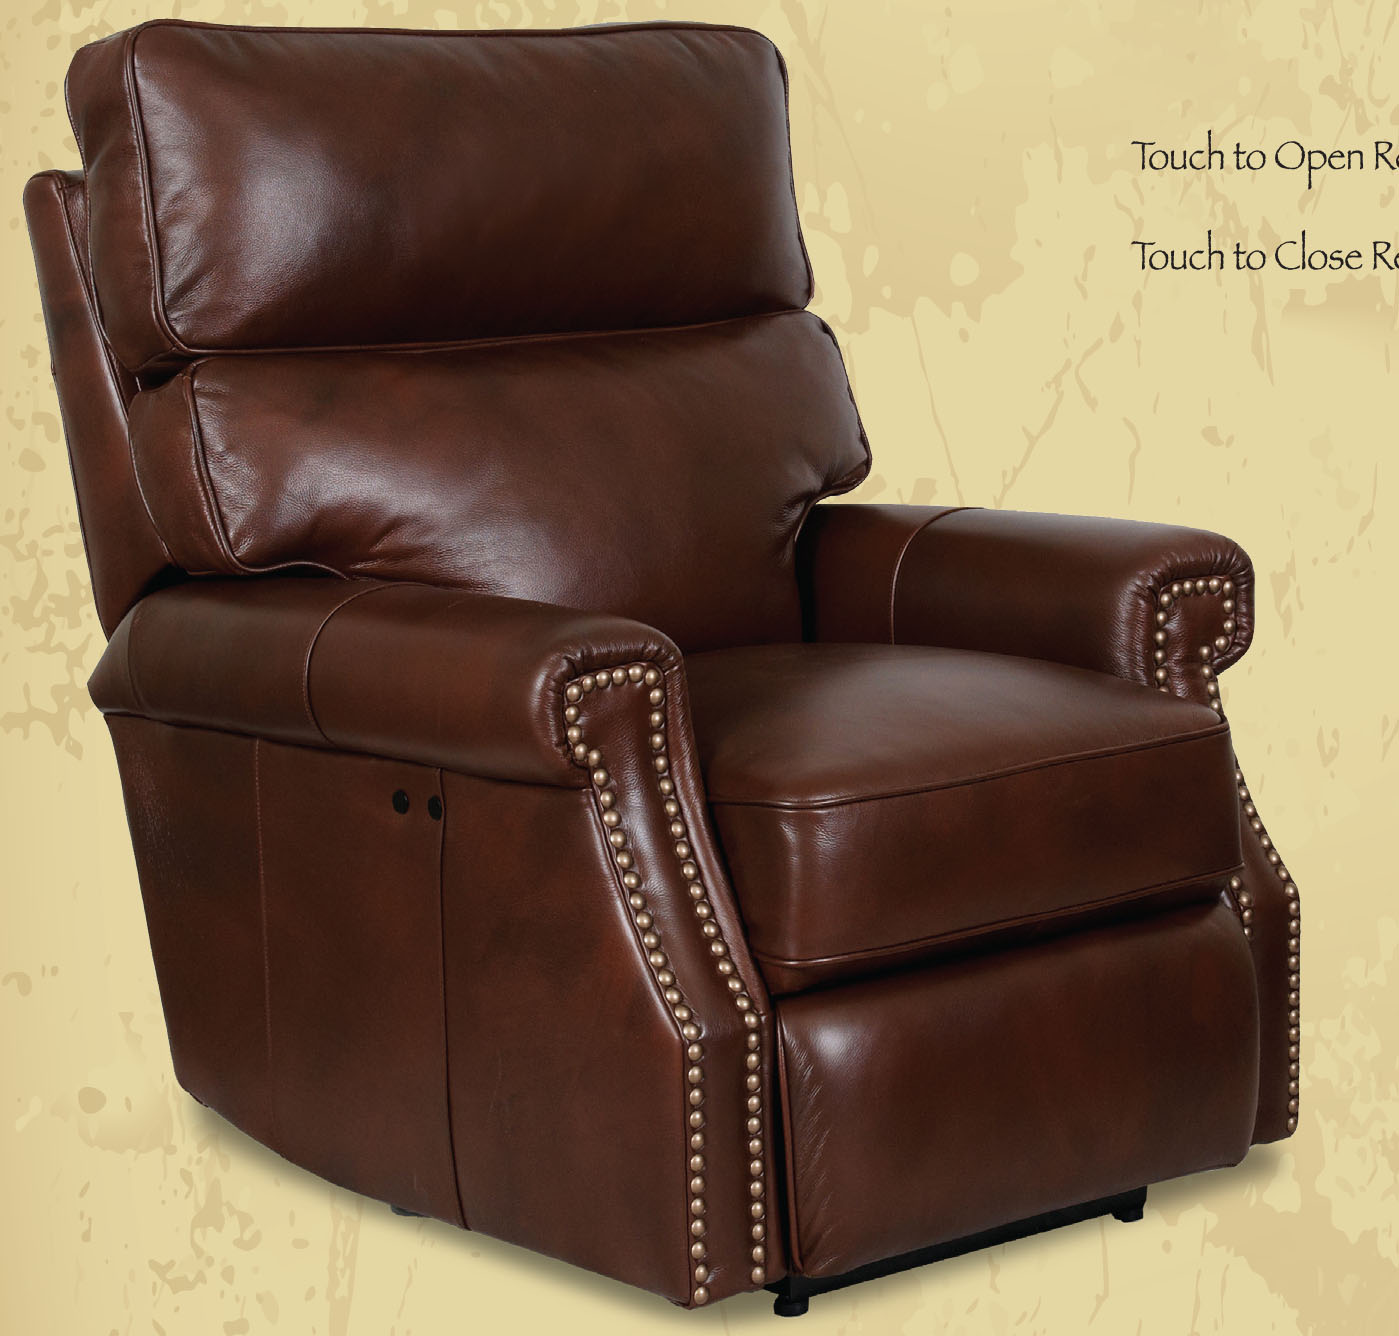 Barcalounger Lochmere II Recliner Chair Leather